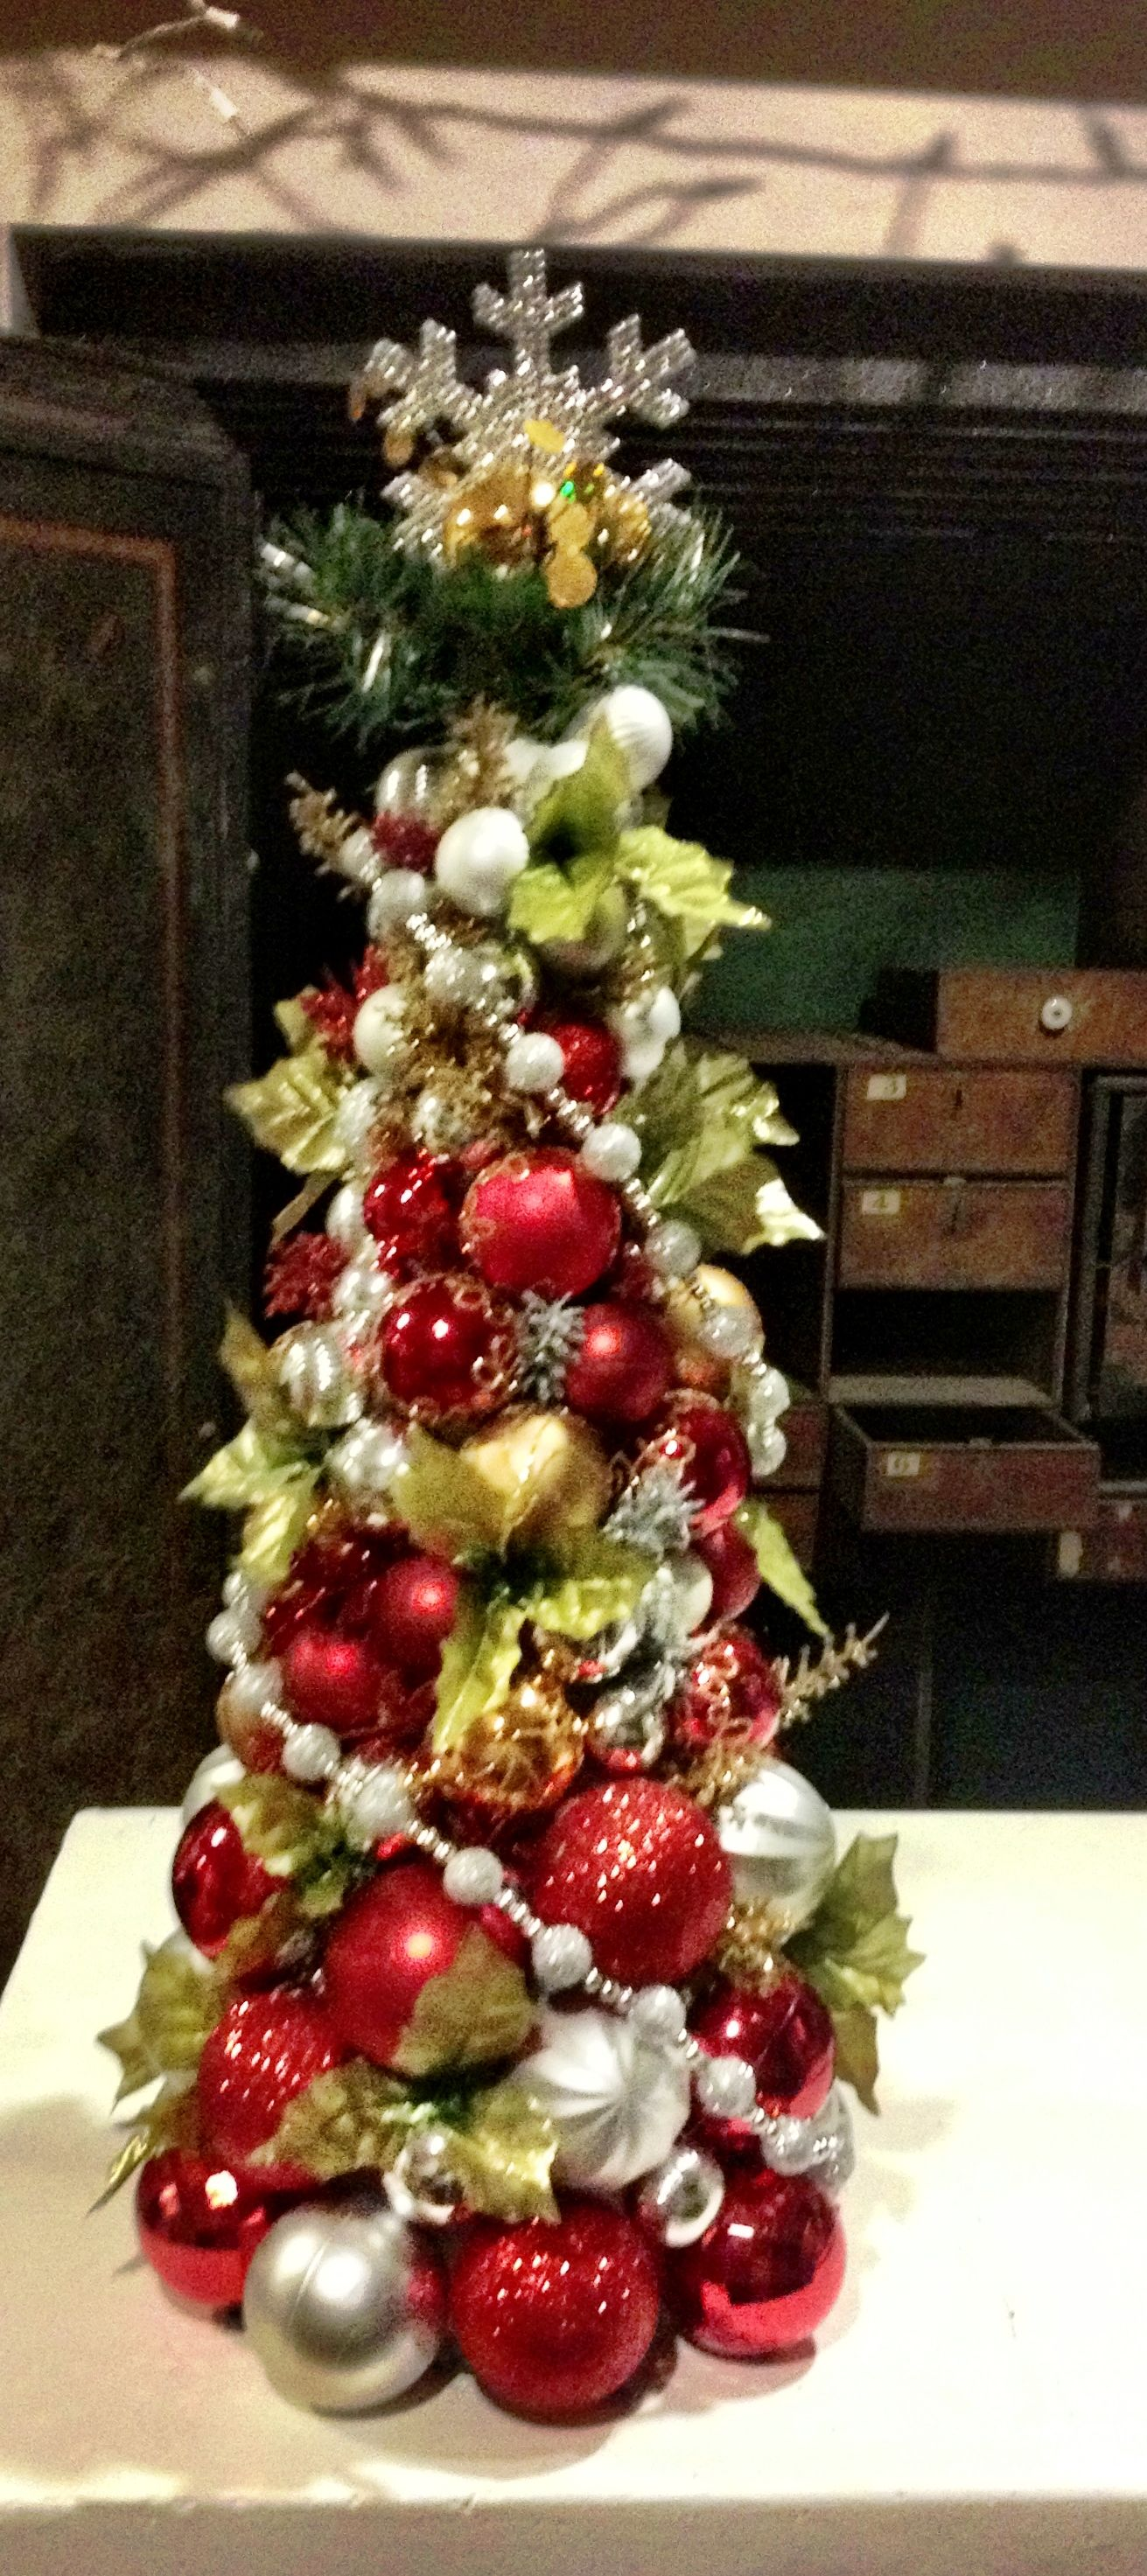 Christmas Ball Tree Easily Made With A Styrofoam Cone And Hot Glue To Glue Assorted Xmas Balls Christmas Tree Decorating Tips Christmas Diy Diy Christmas Ball